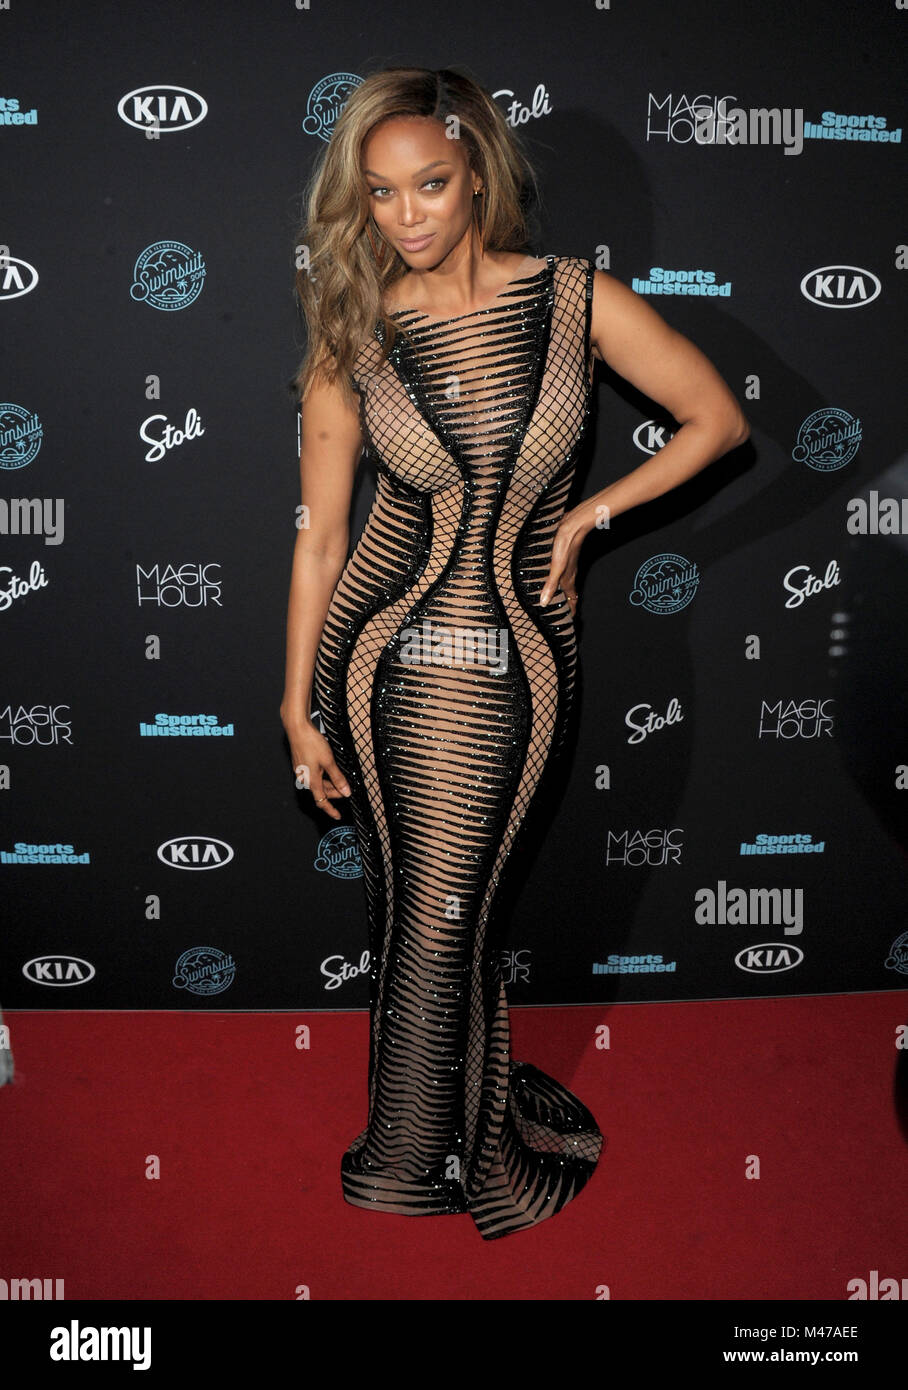 New York, NY, USA. 14th Feb, 2018. Tyra Banks attends Sports Illustrated 2018 Launch event at Moxy Times Square - Stock Image